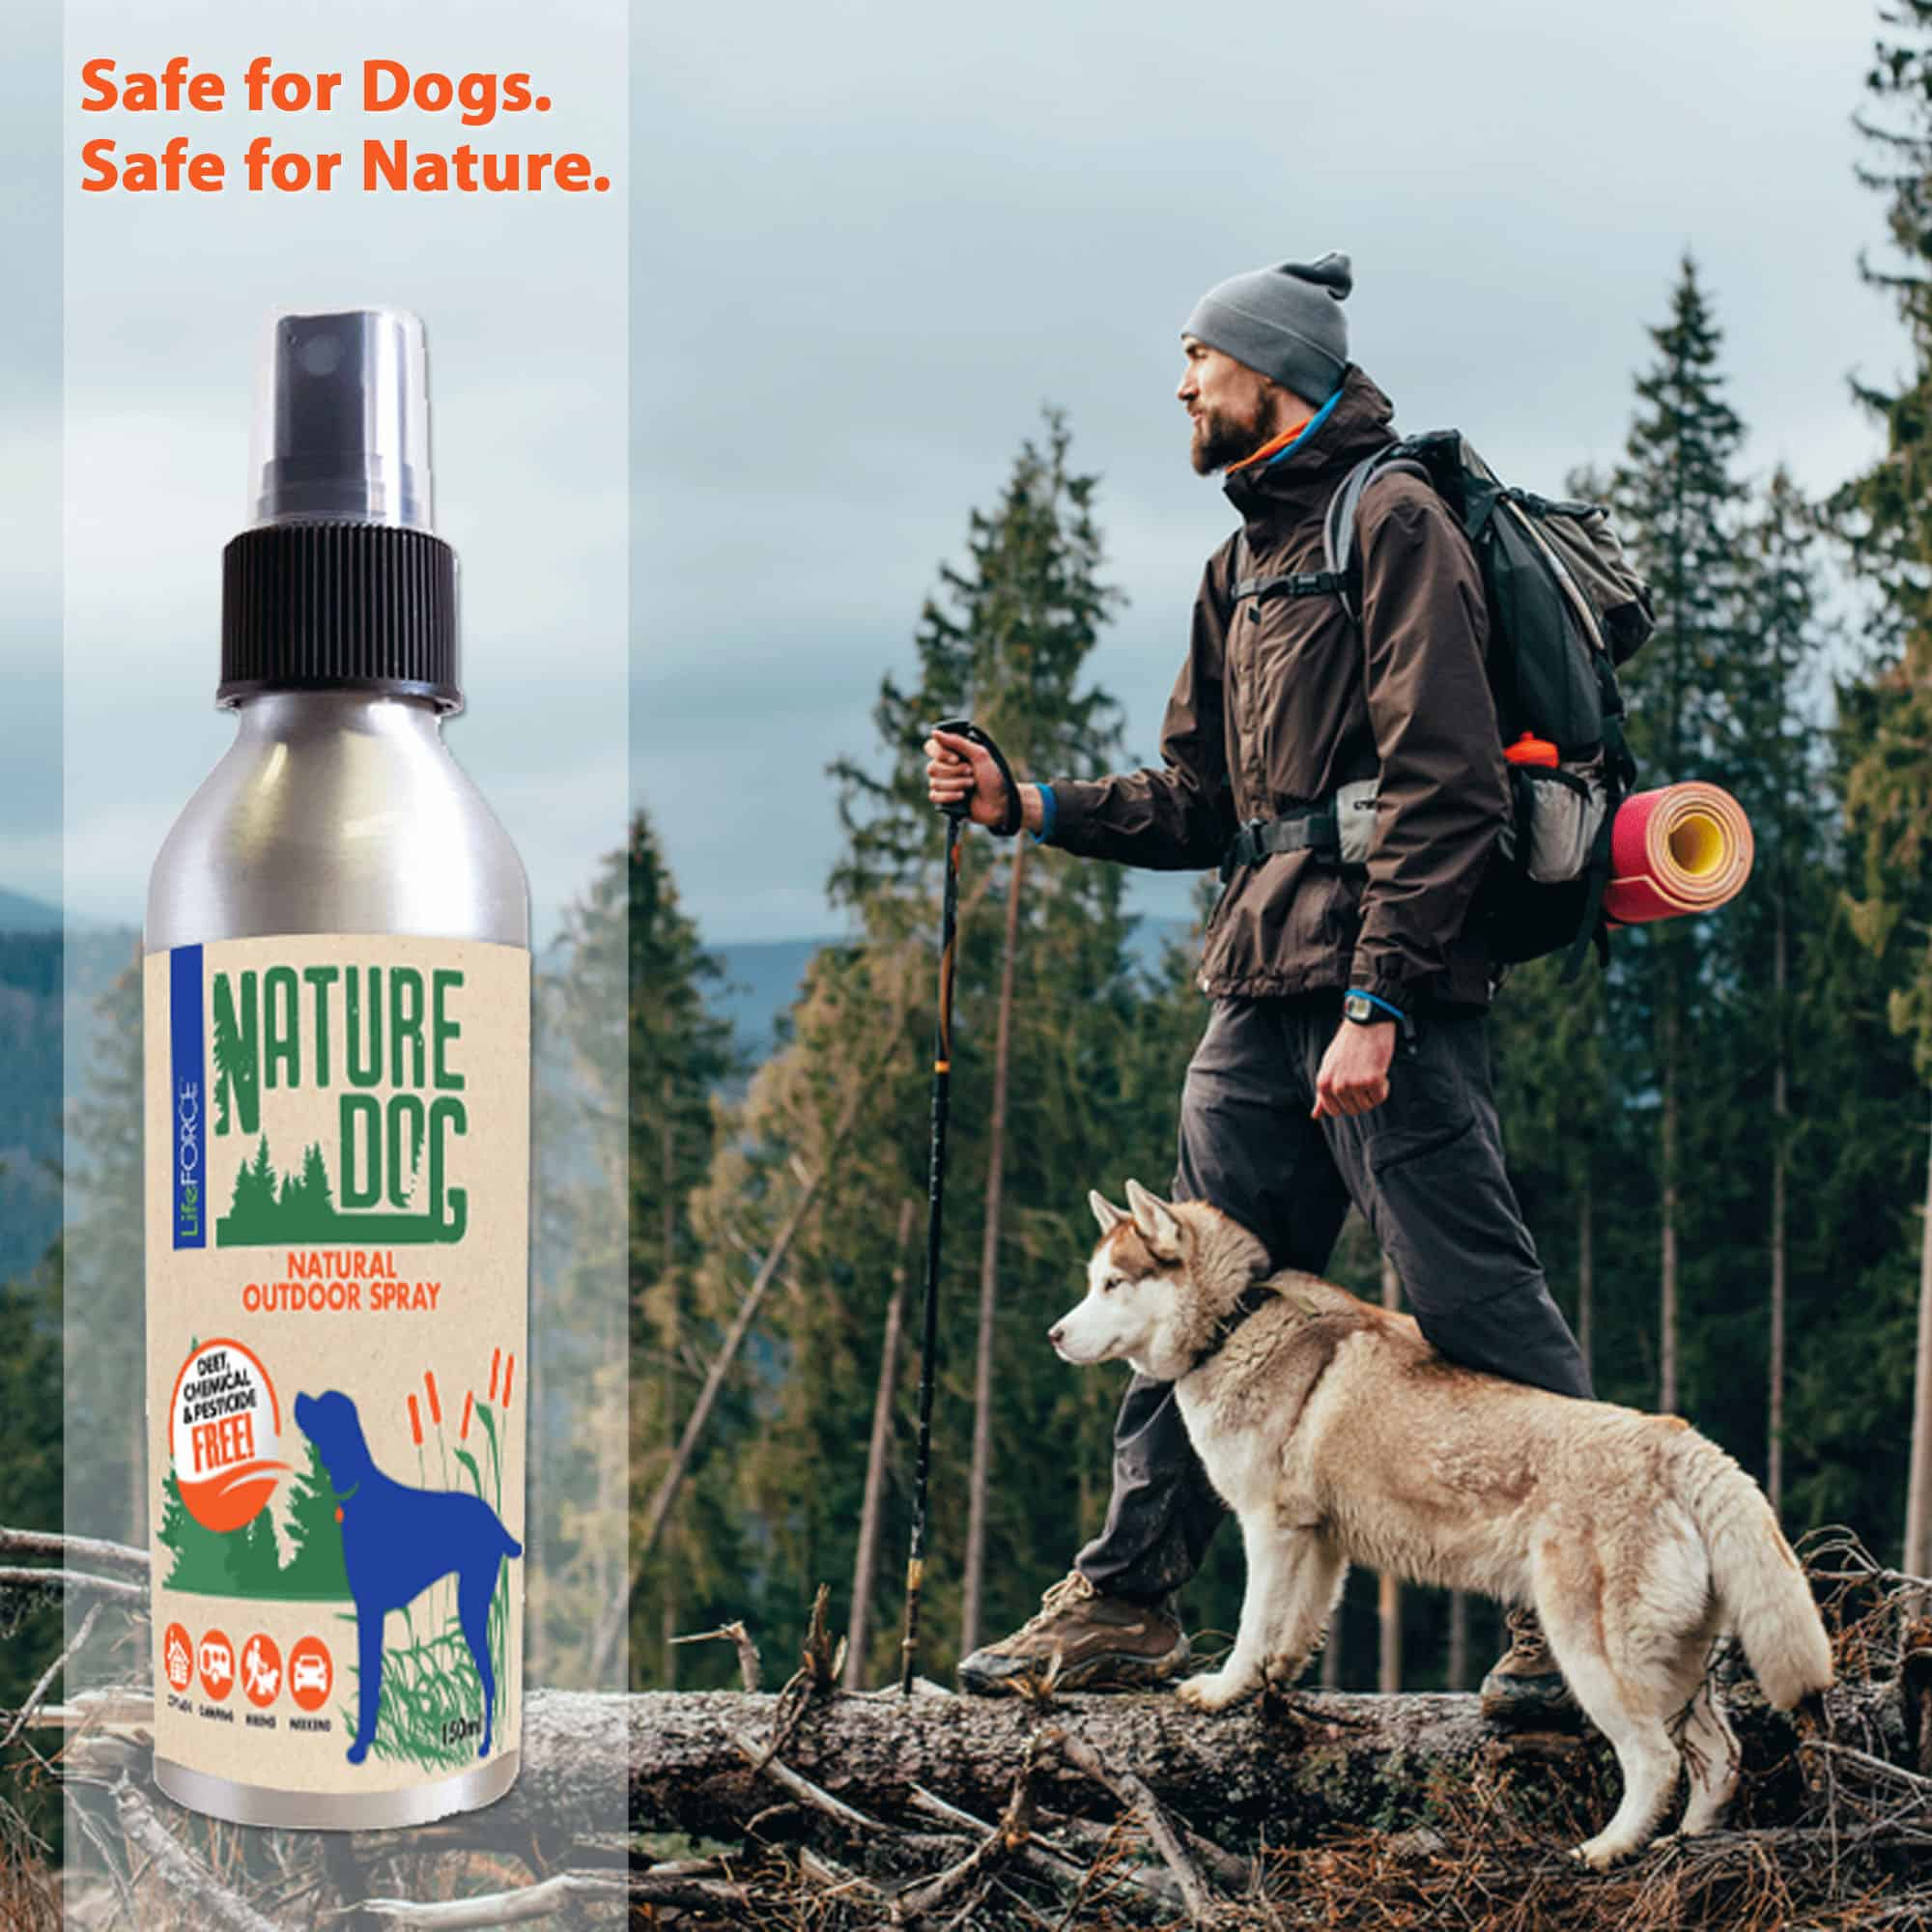 Nature Dog Natural Outdoor Spray